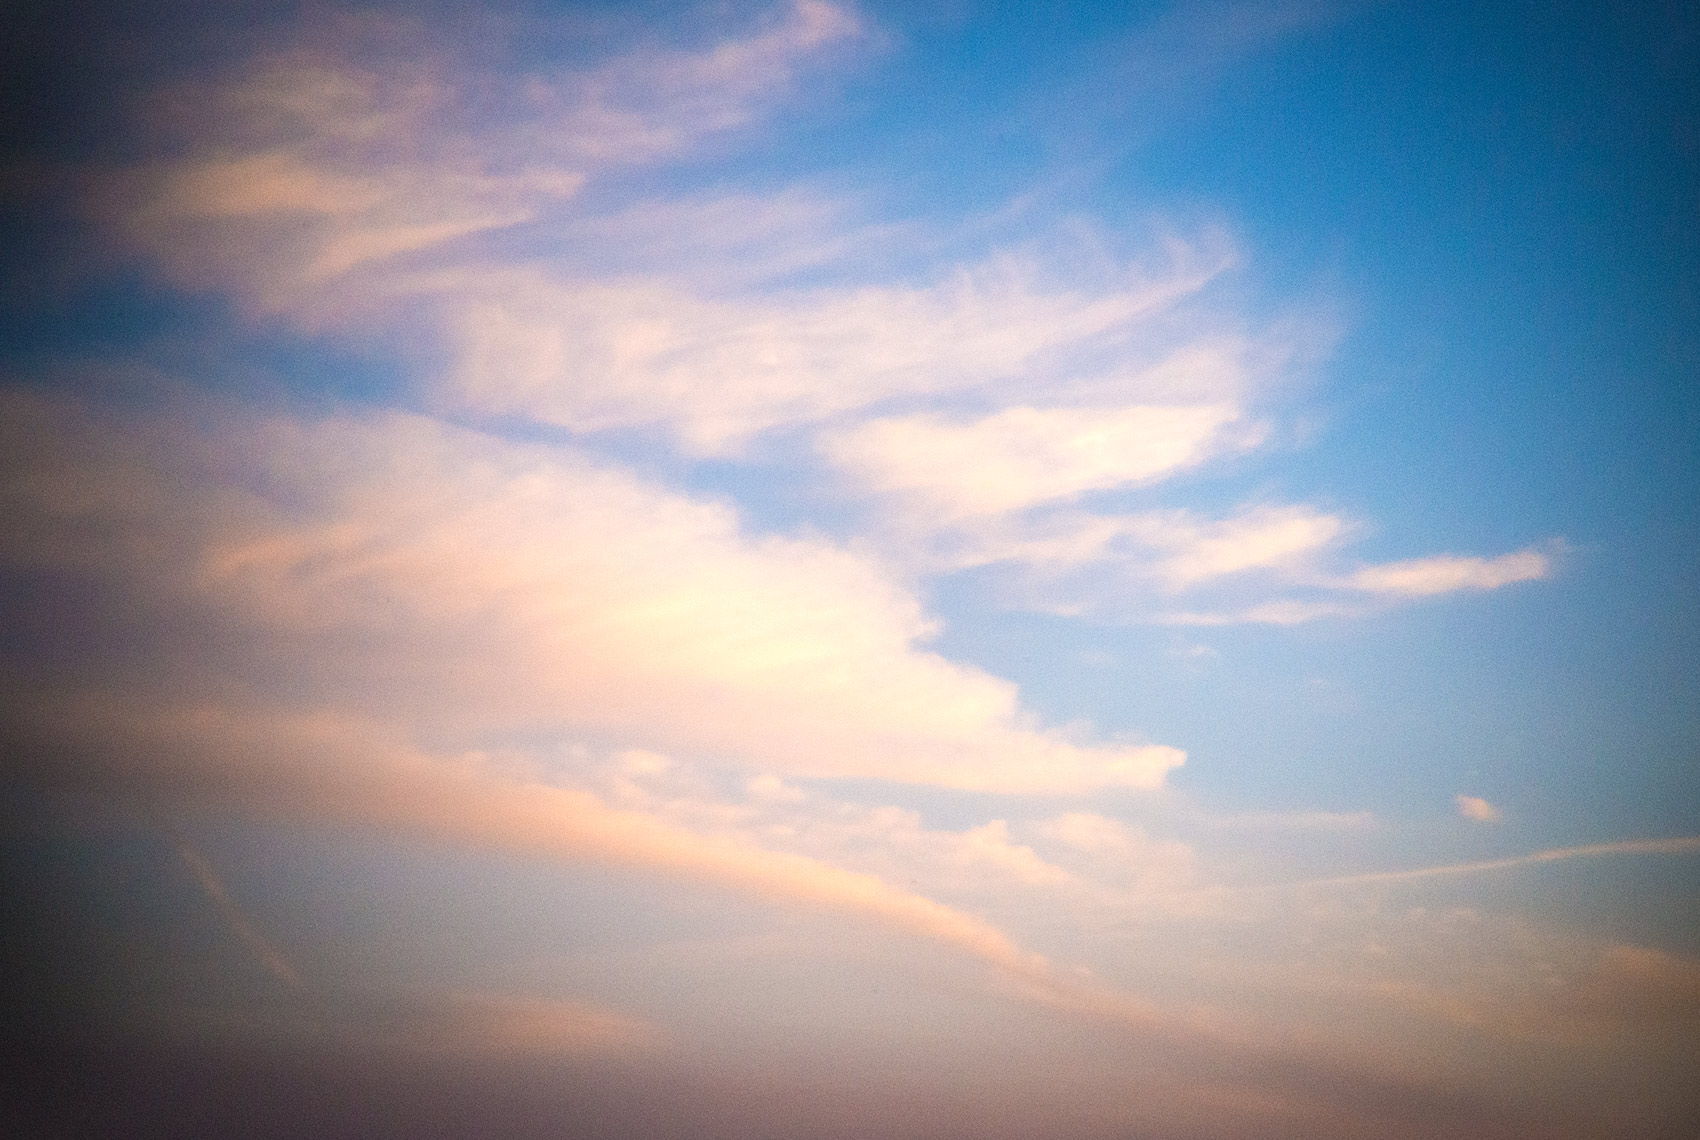 IMAGE OF SKY WITH CLOUDS | TOSCA RADIGONDA PHOTOGRAPHY